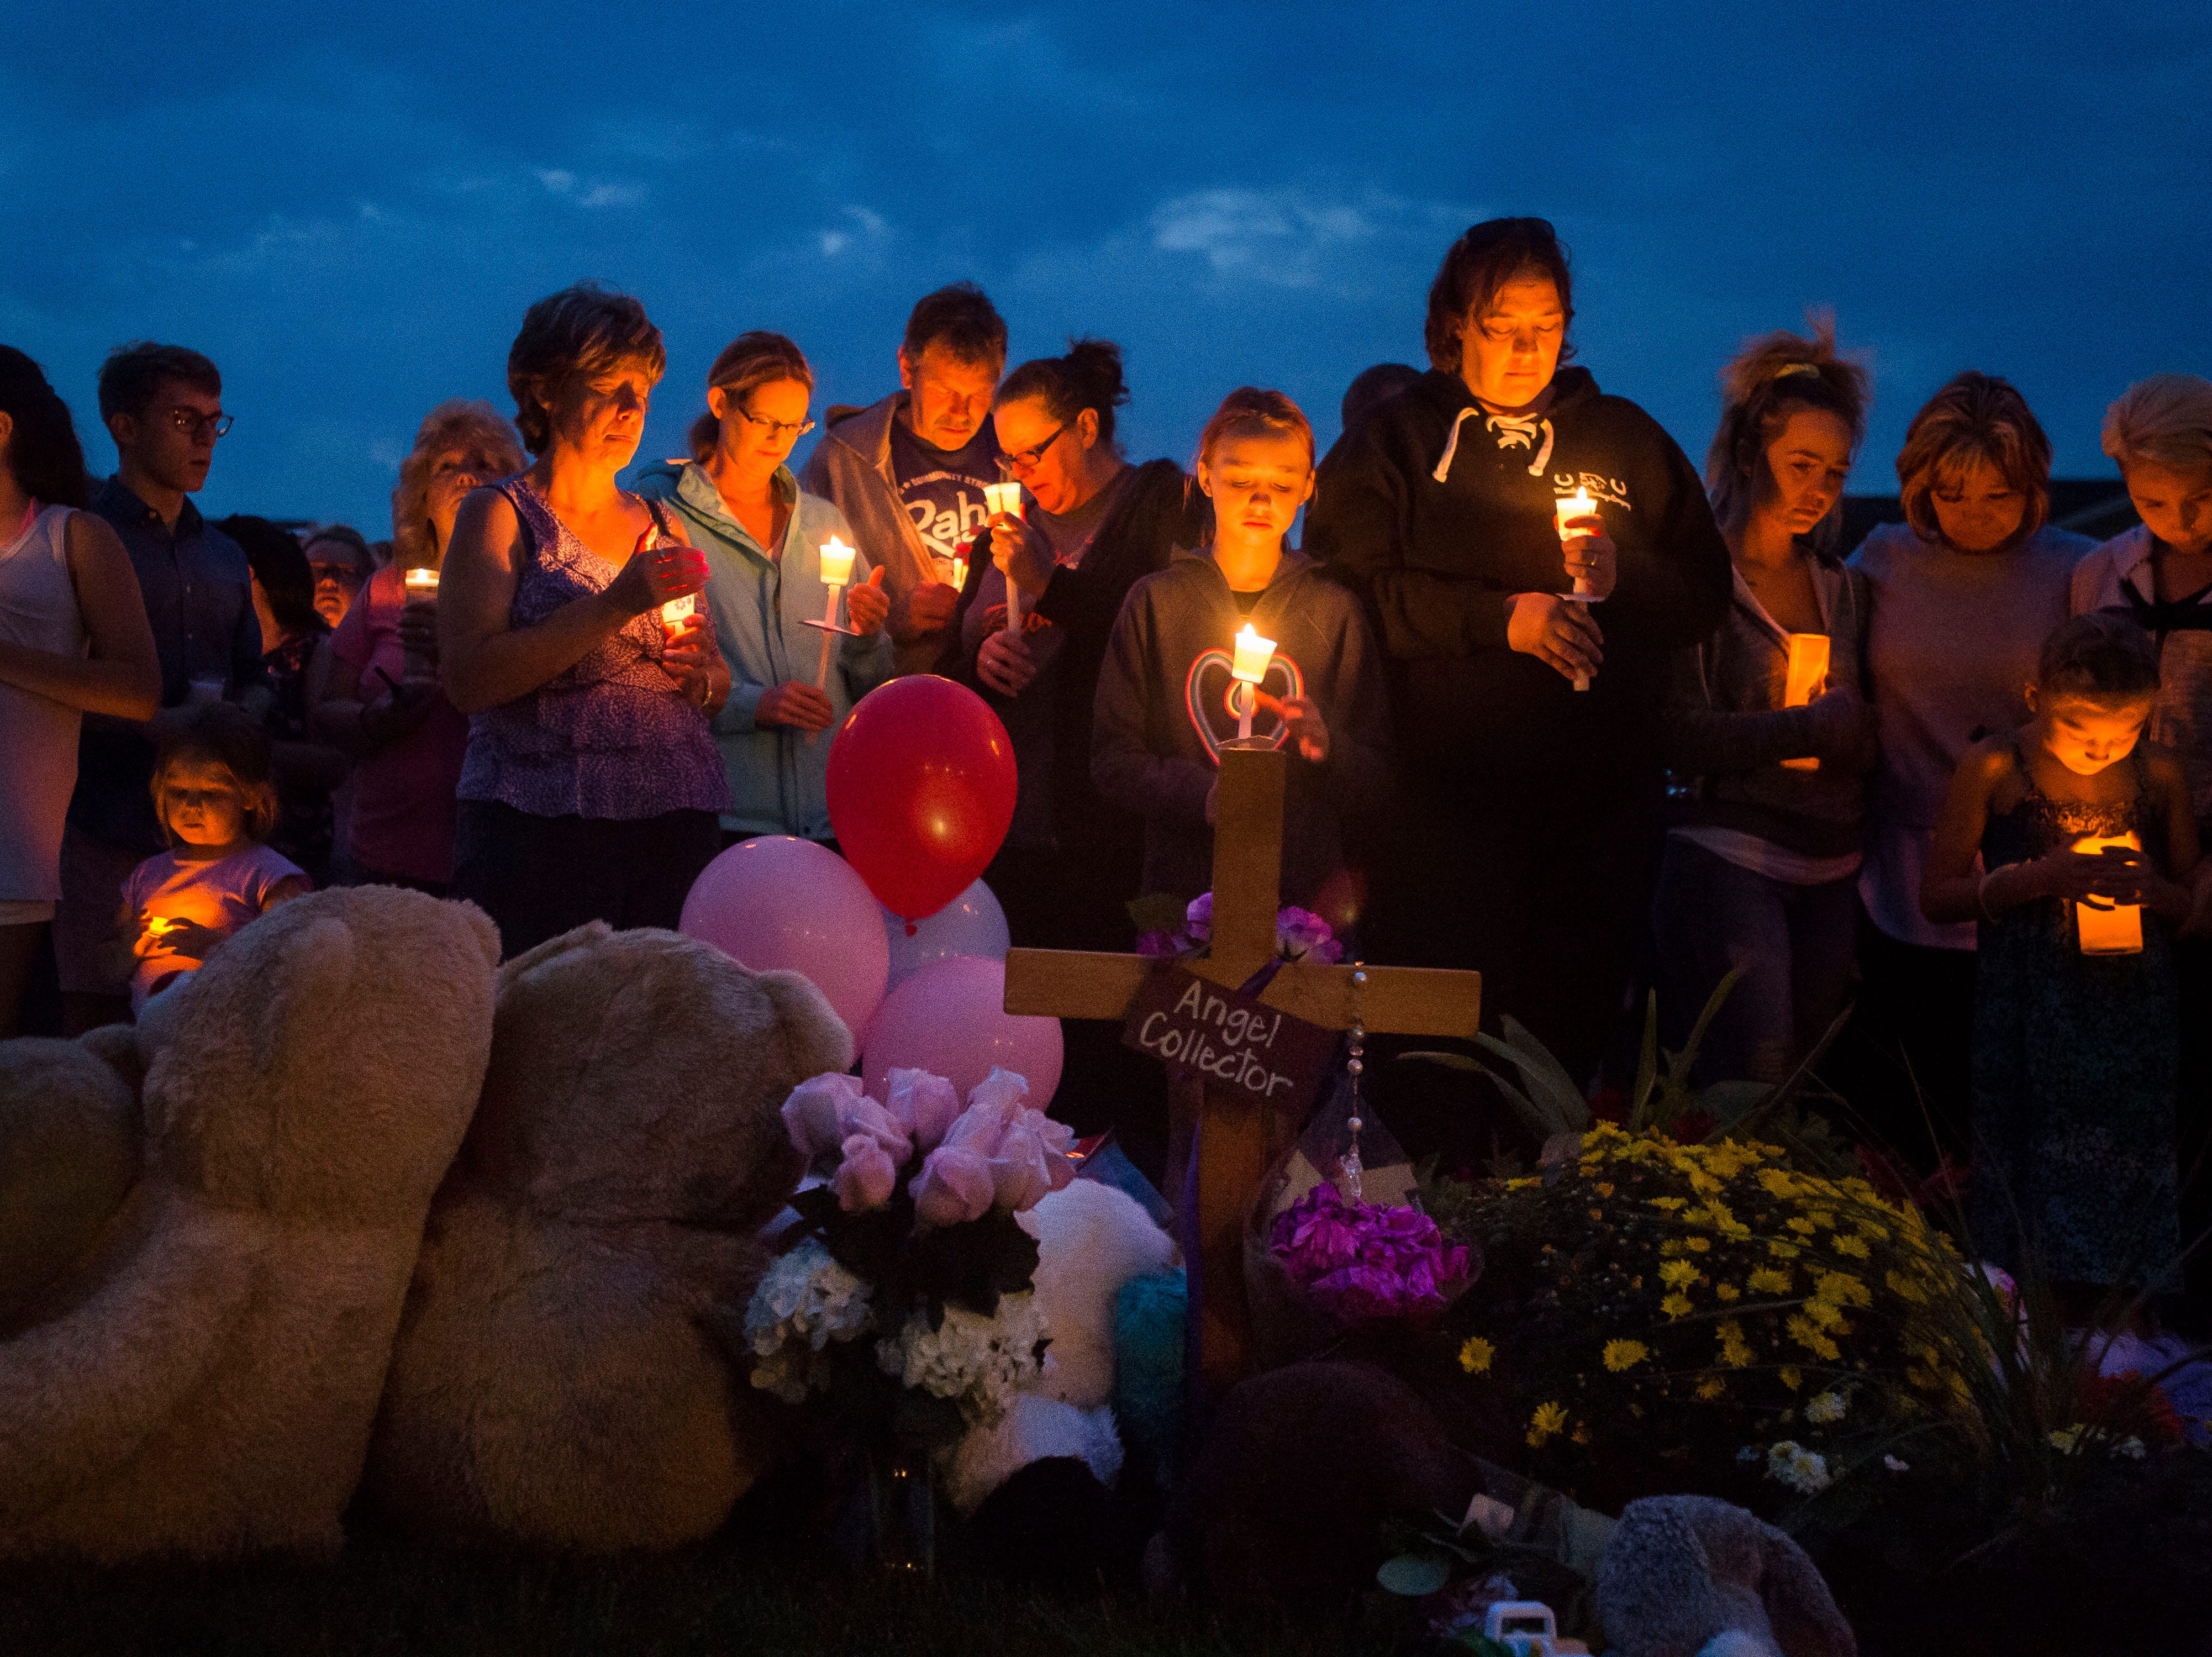 Mourners gather in front of a memorial for a candle-lit vigil for the slain Shanann Watts and her two daughters, Bella, 4, and Celeste, 3, in front of the Watts' family home on Friday, Aug. 17, 2018, in Frederick, Colo.